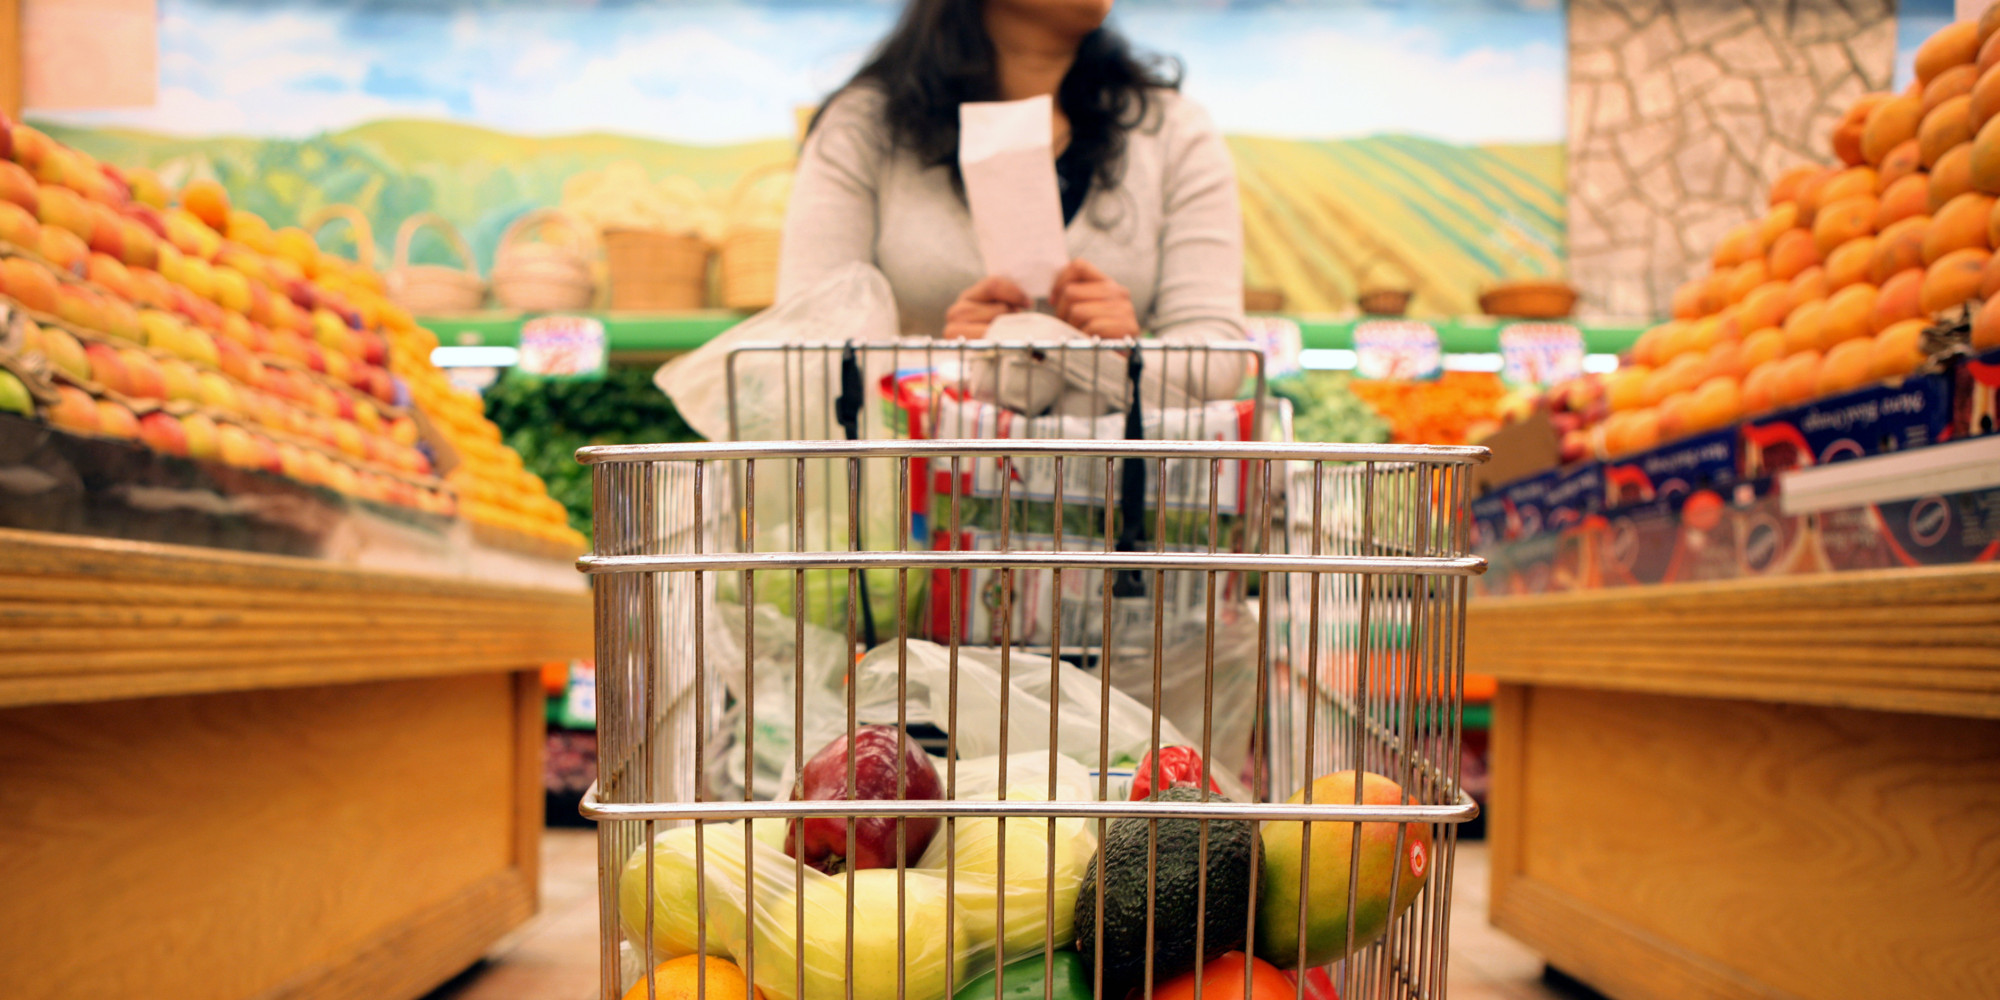 Woman grocery shopping